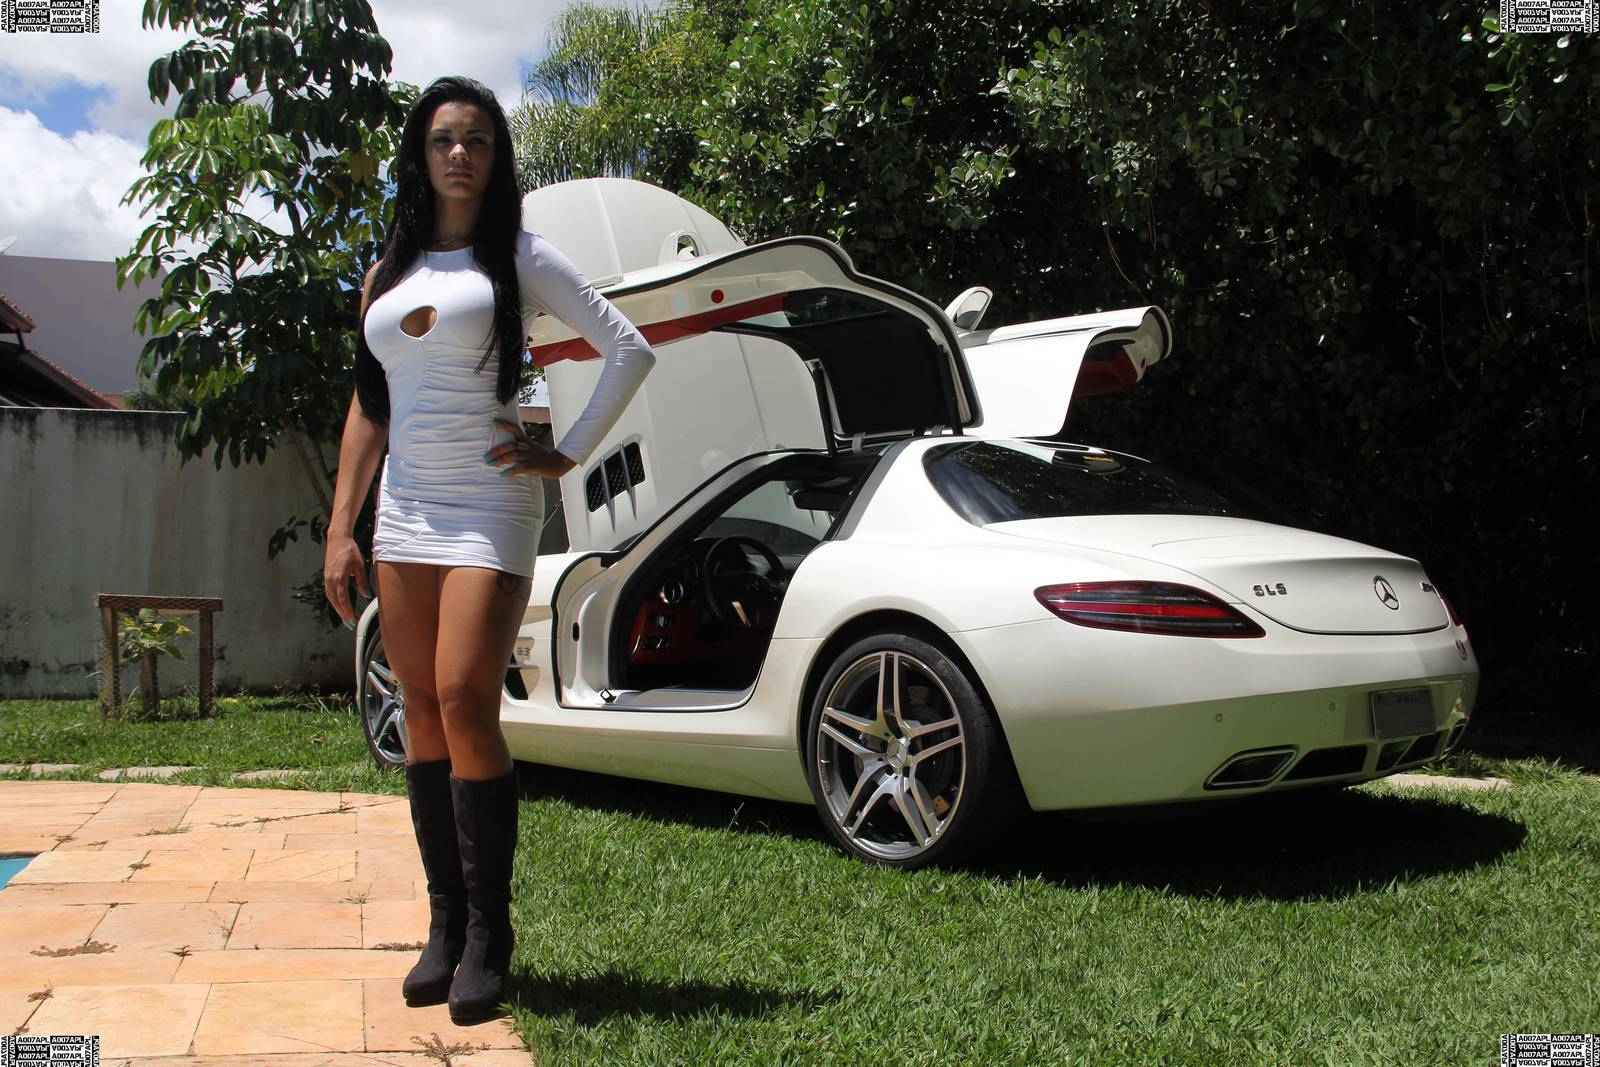 Mercedes Benz Sls Amg Ridingirls